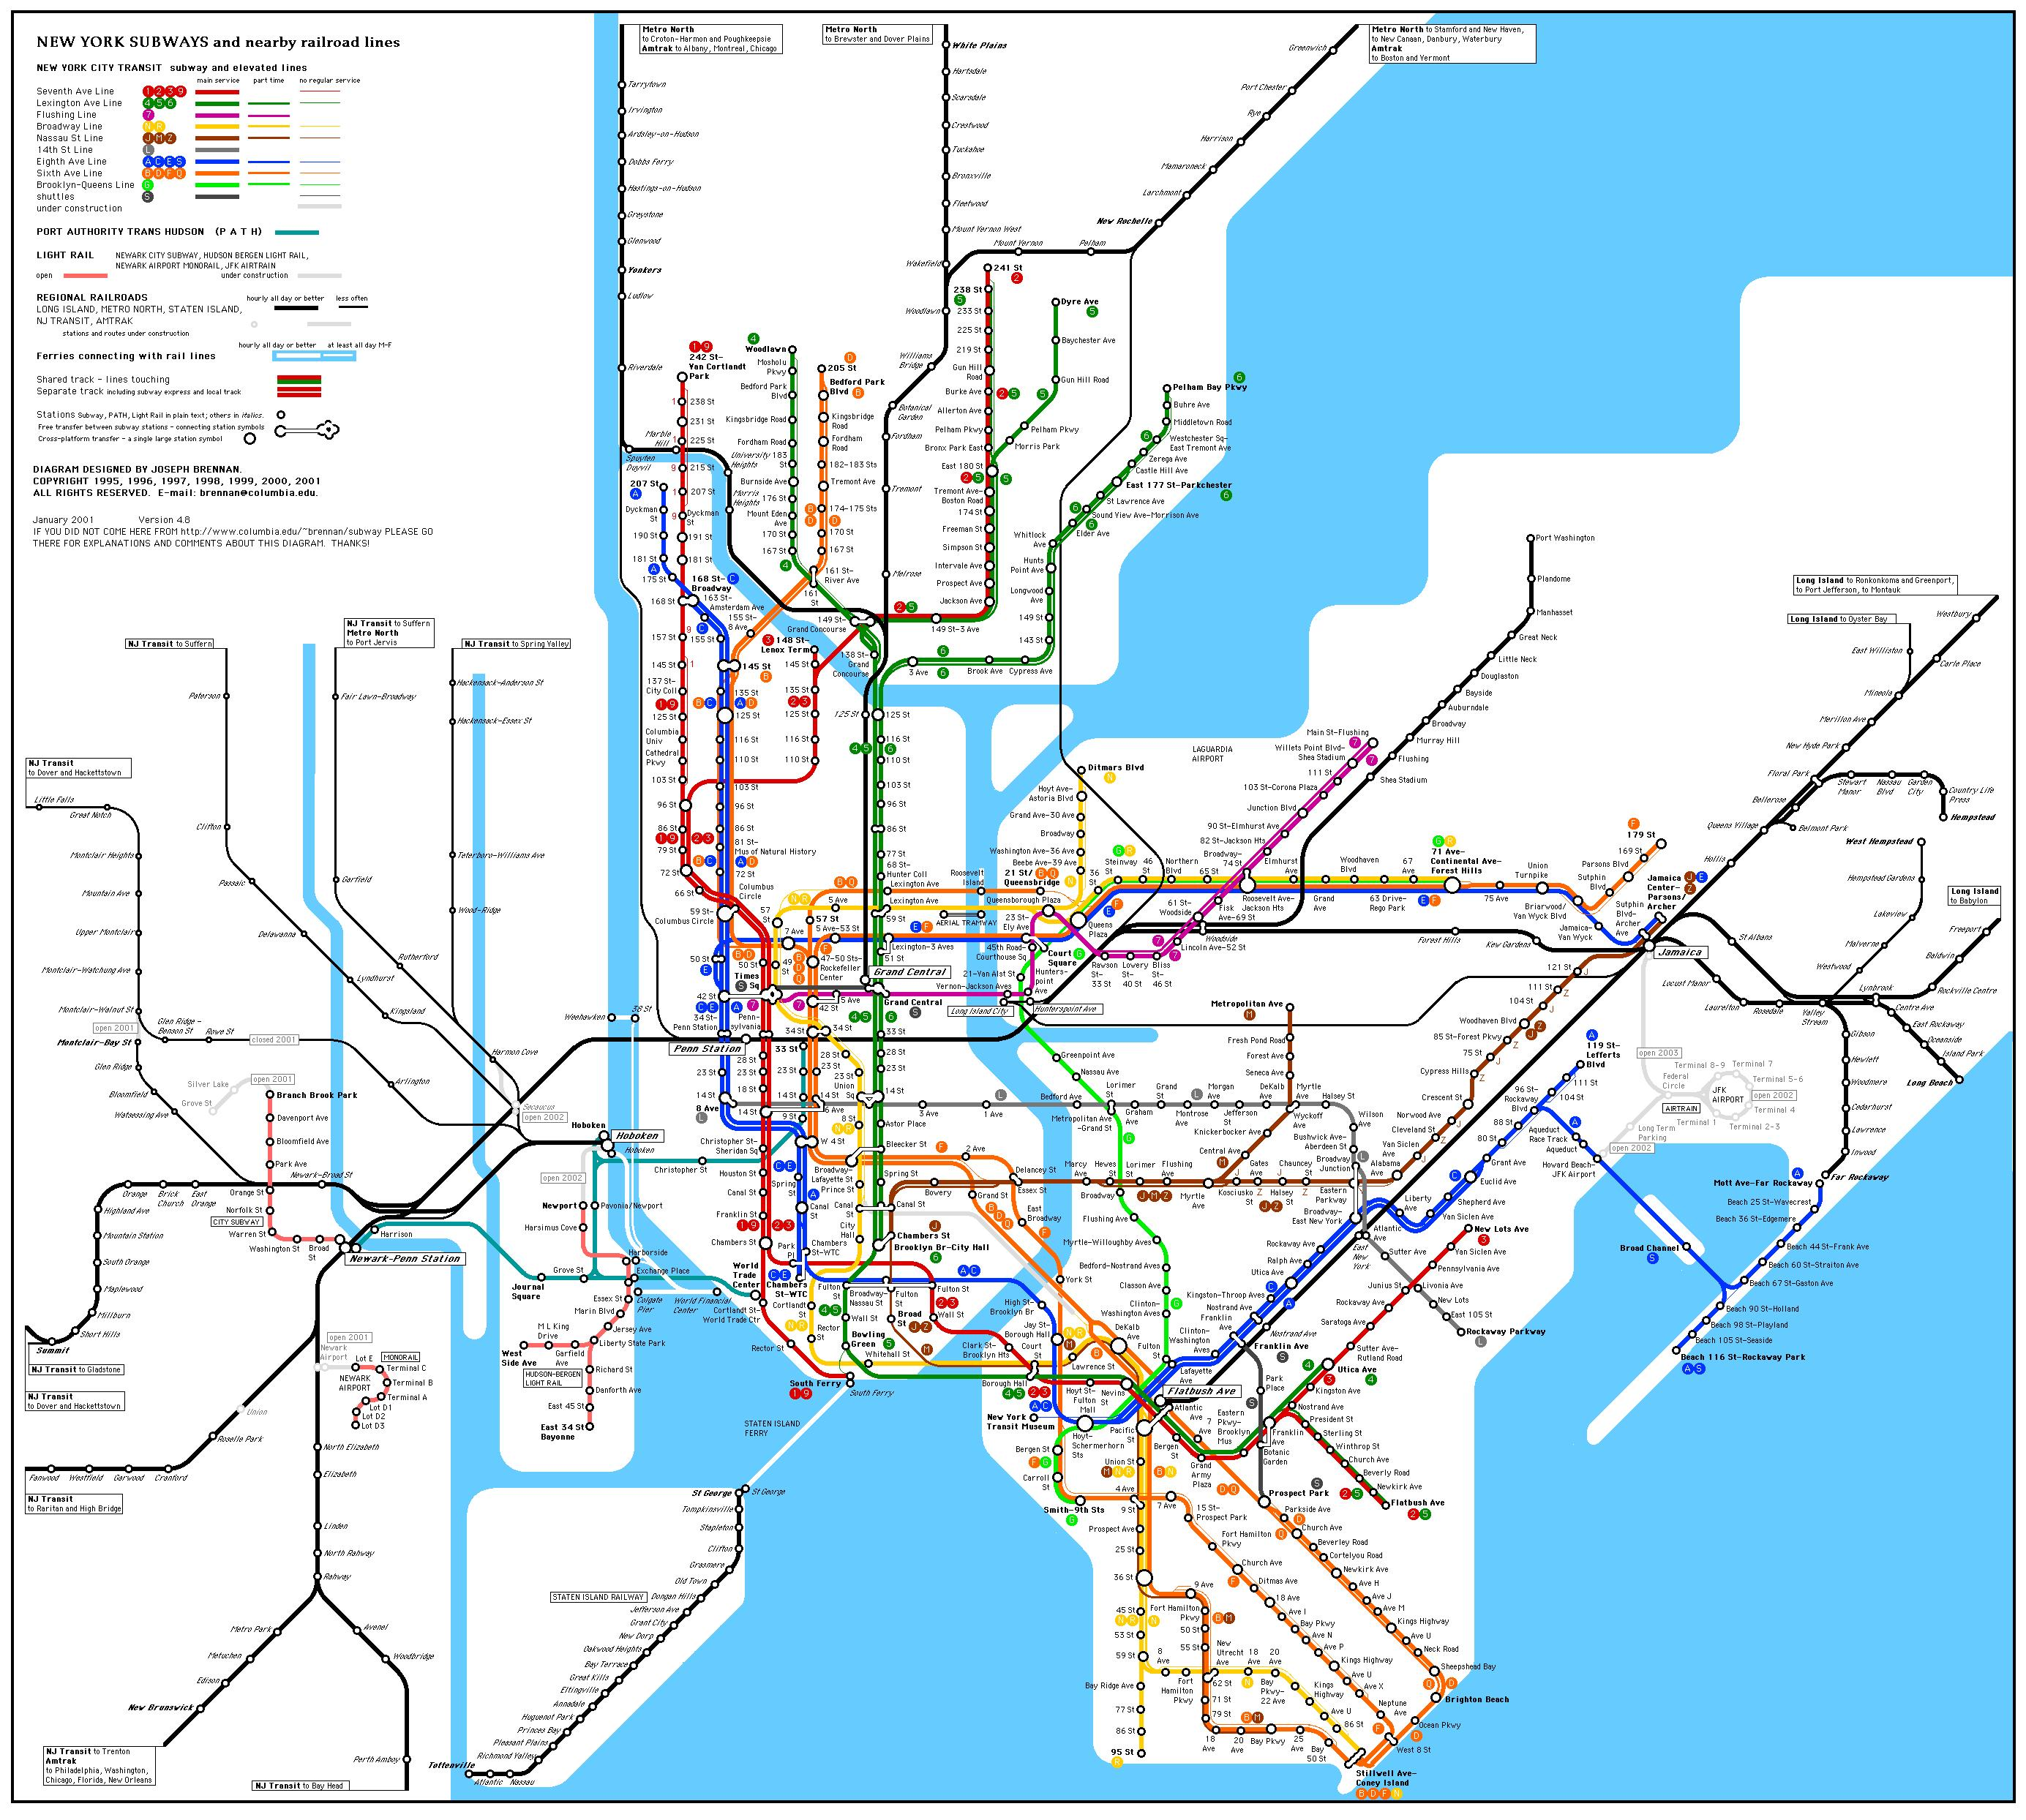 la metro rail expansion map 2014 with New York on Map Of Montreal Metro likewise Sbahn Plan Berlin also Los Angeles Subway Expansion About The Purple Line together with Showthread together with New york.